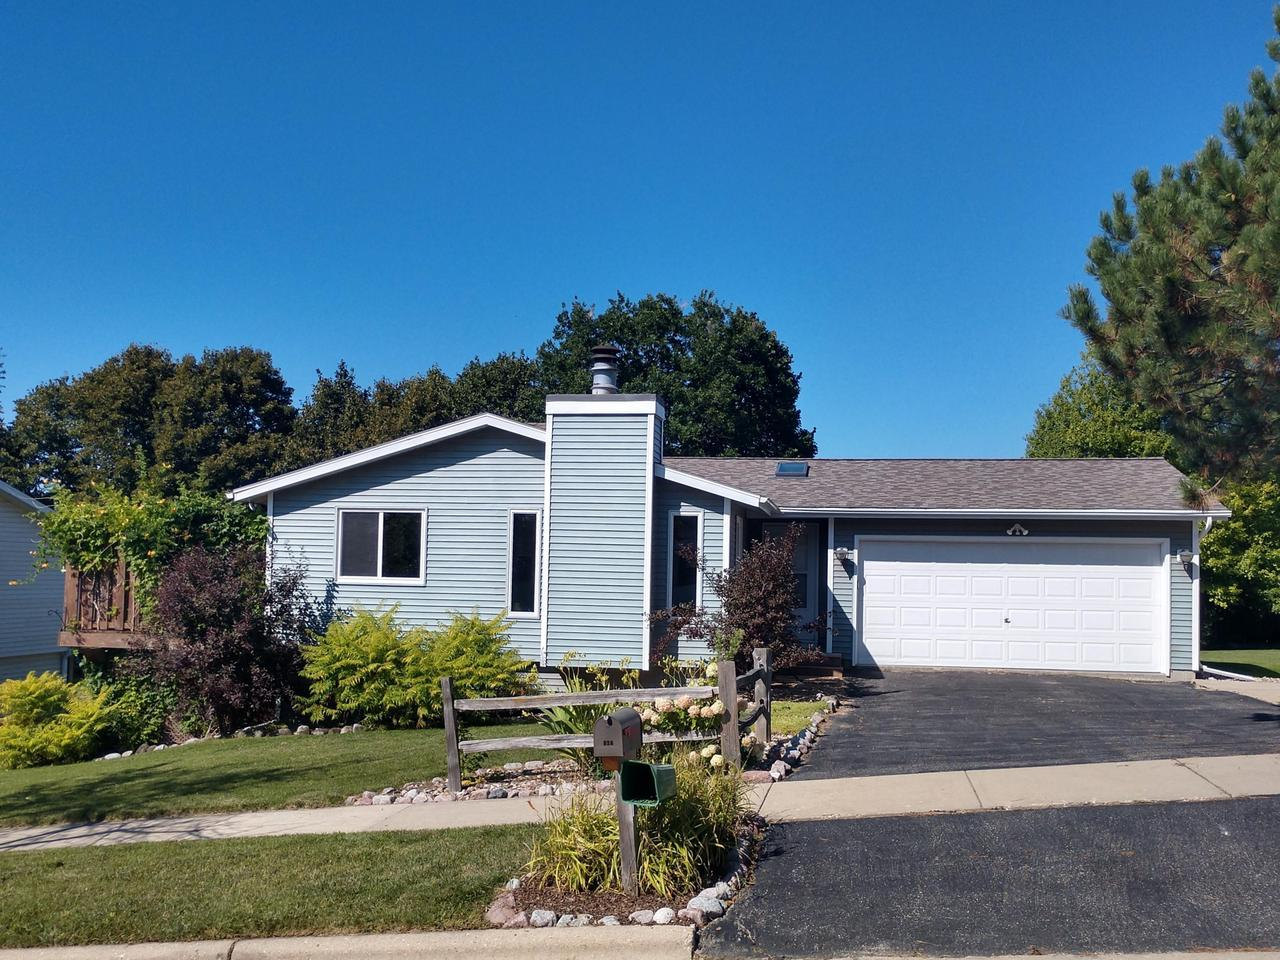 NEW PRICE! You will want to schedule a showing before this move-in-ready home is snapped up! Built in 1992, this 3 BR, 2 full BA ranch home features new carpeting, fresh paint, NFP, and lots of new windows. Master BR has WIC and private BA. 2nd BR also has WIC. Eat in kitchen with breakfast bar has patio door leading to a semi private raised deck. 2nd deck also includes a bon fire patio. Enjoy a fenced in garden, shed, and extra storage space under raised deck.  Bring your ideas to the walk-out lower level with new French patio door, 3 sliding windows, and 12 course height, plumbed for additional bath. Roof 2014. Water heater 2017. Furnace 2013. 2 1/2 car attached garage includes extra space, 2 work benches, and is insulated. Villa Park city park is right up the road.